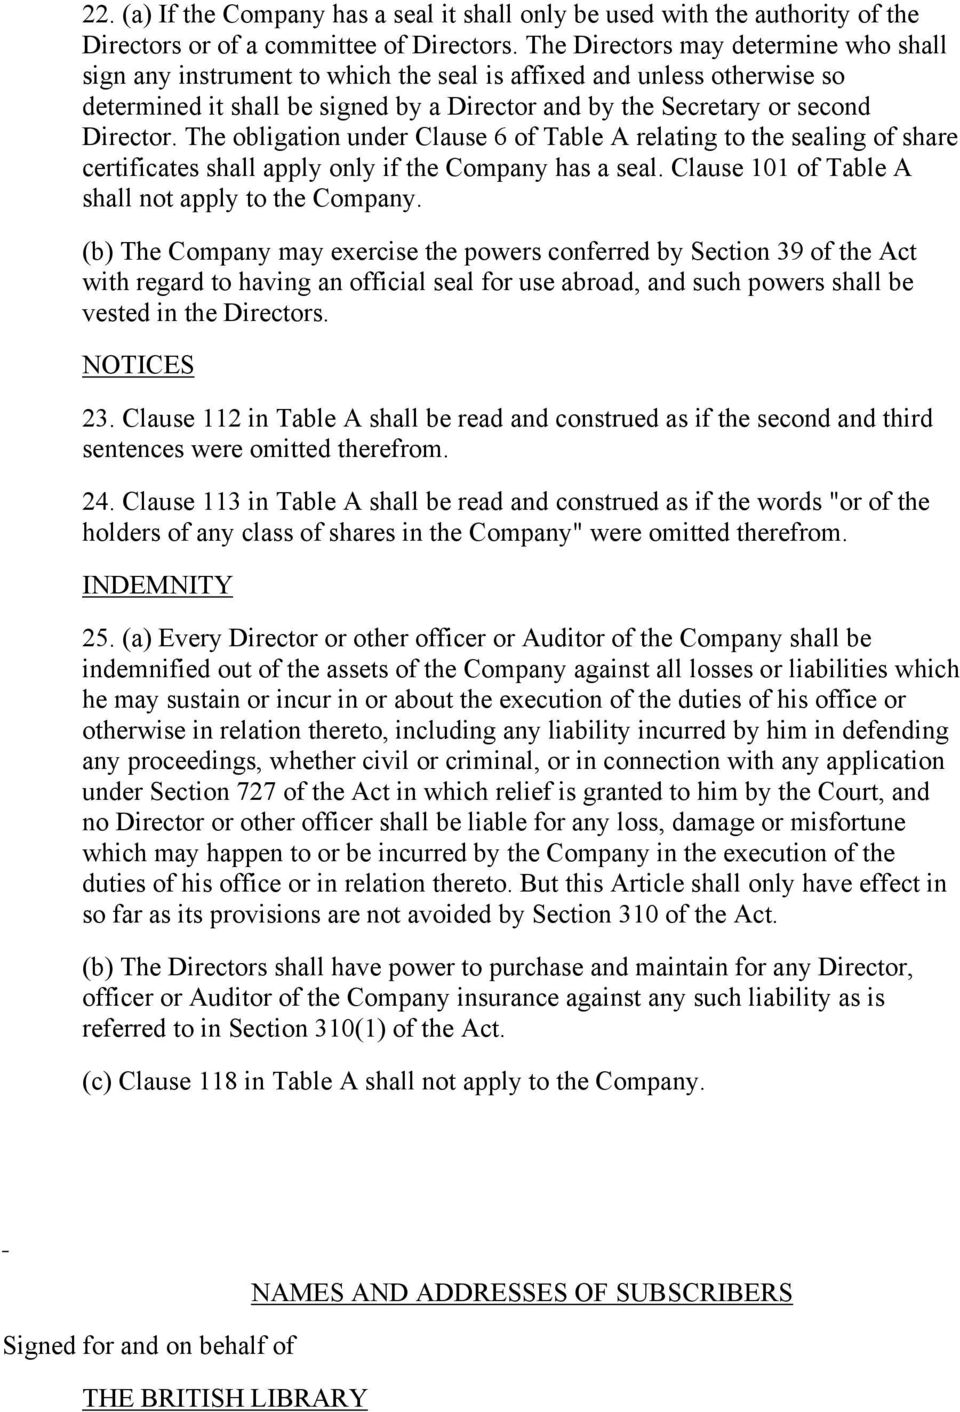 The obligation under Clause 6 of Table A relating to the sealing of share certificates shall apply only if the Company has a seal. Clause 101 of Table A shall not apply to the Company.